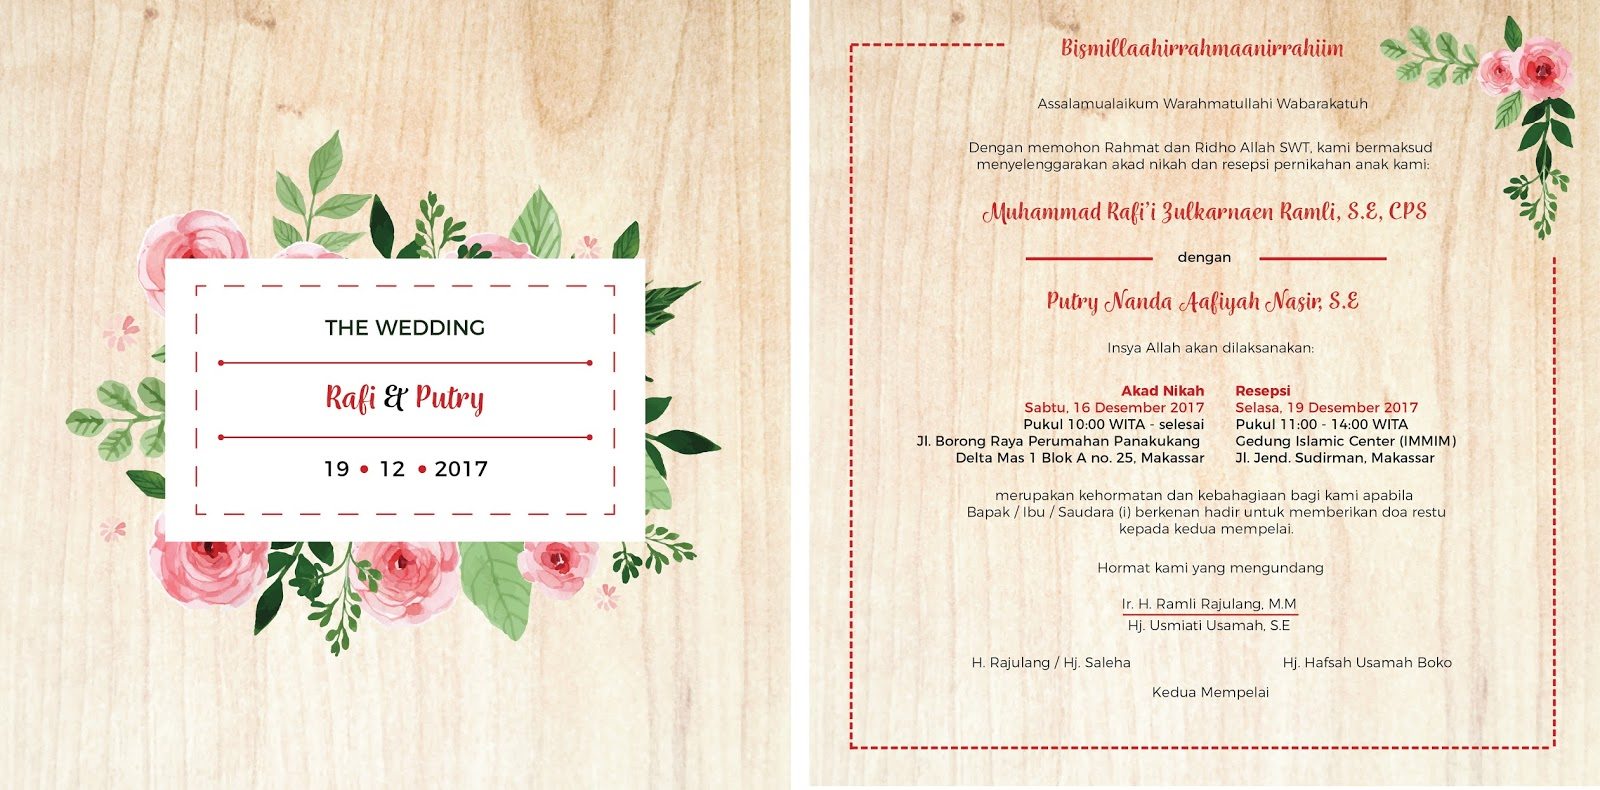 Kamar kiki indonesian wedding invitation philosophy second attempt with the same concept as the previous one flip side floral element is a must identical text layout stopboris Gallery